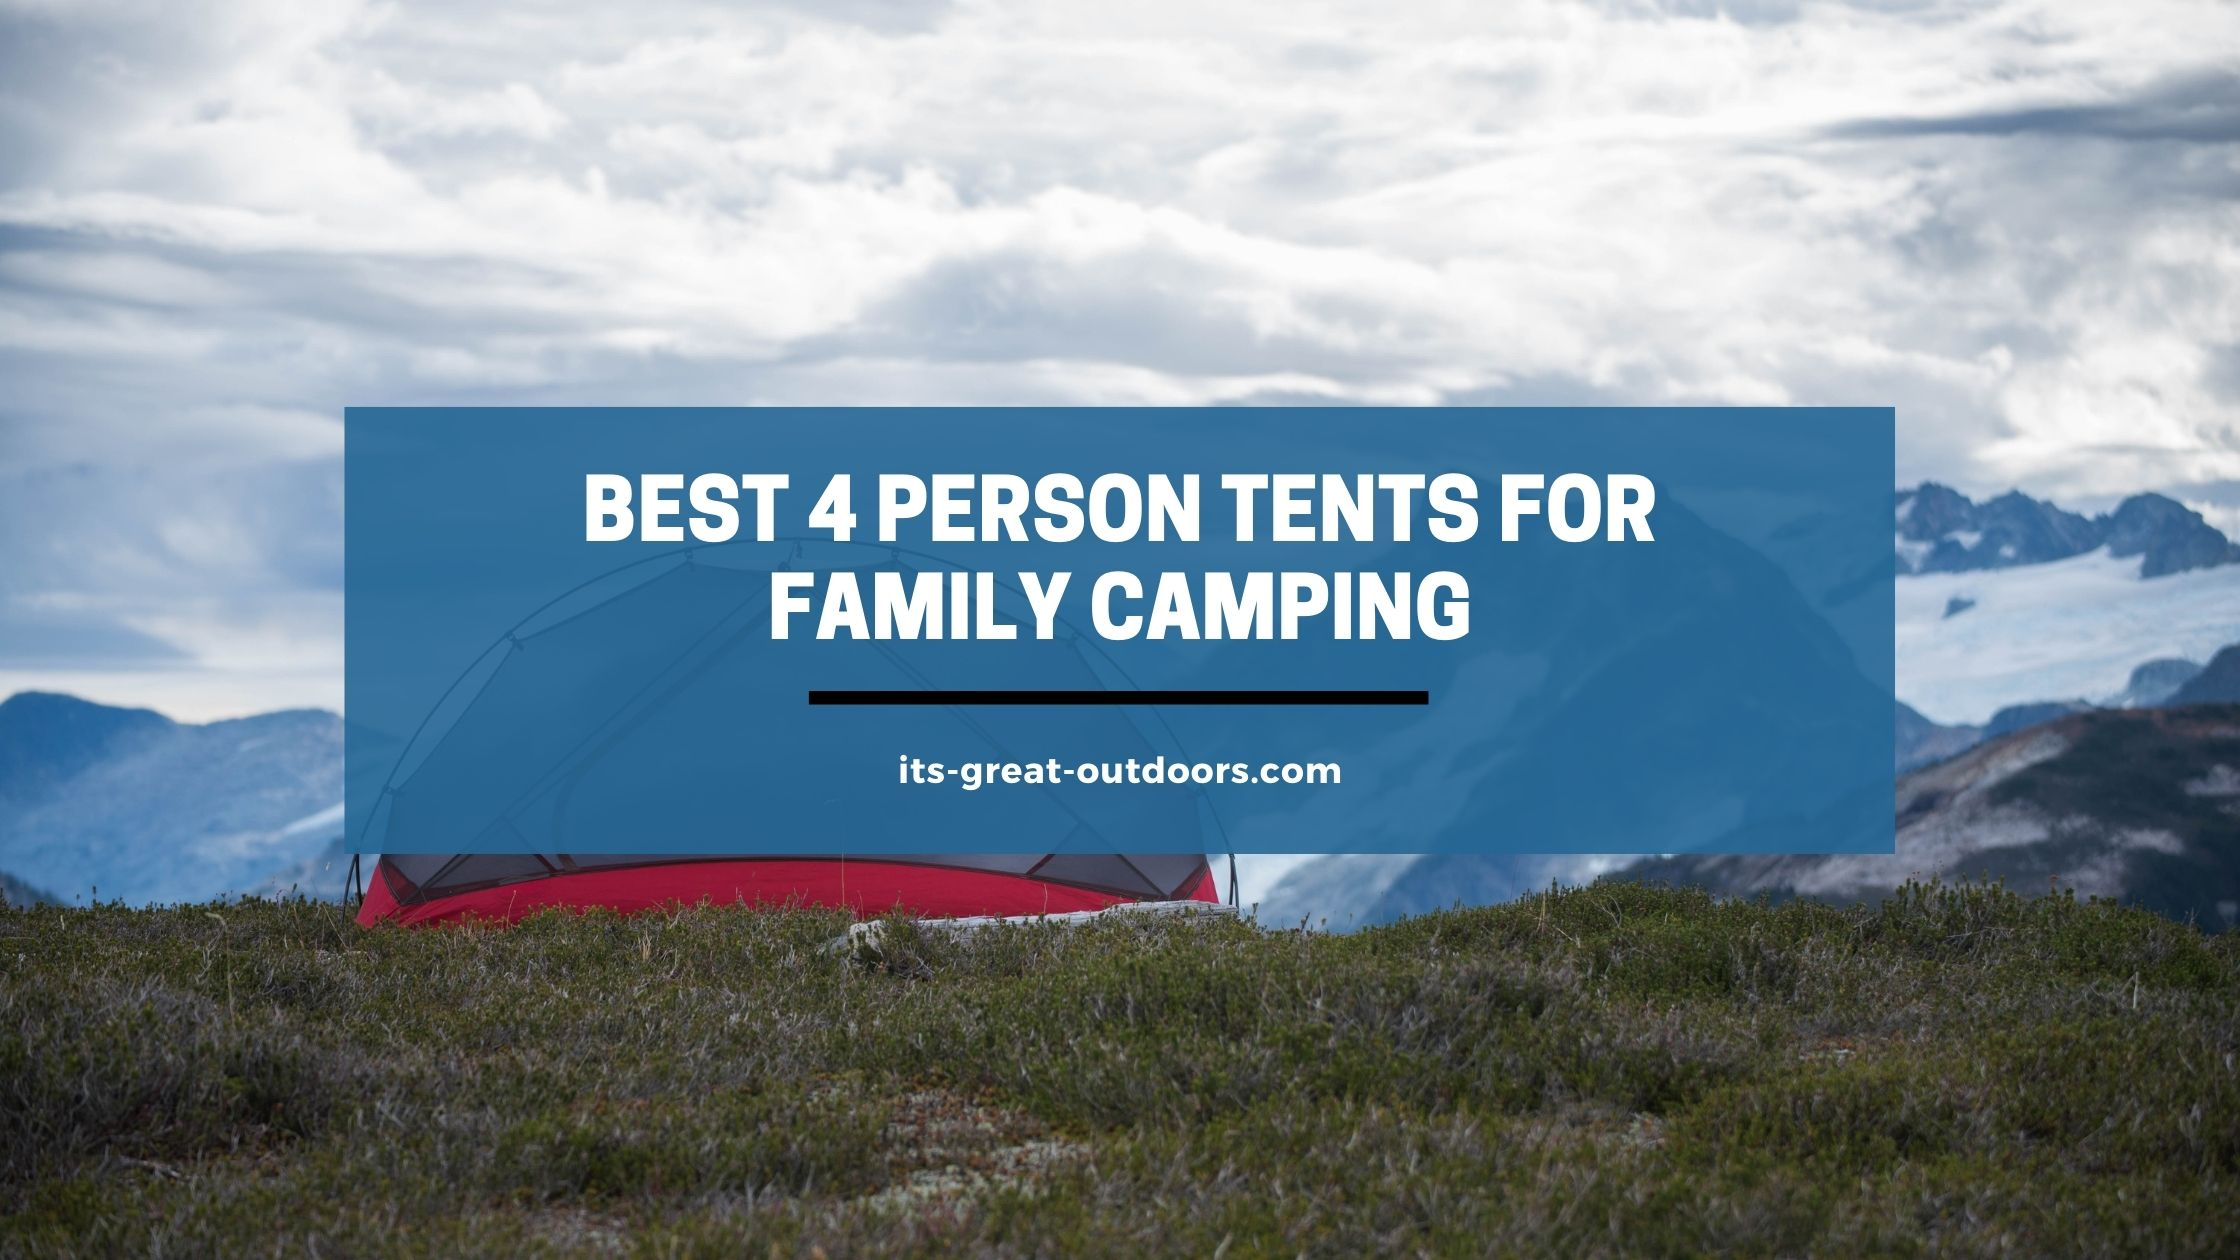 Best 4 Person Tents for Family Camping